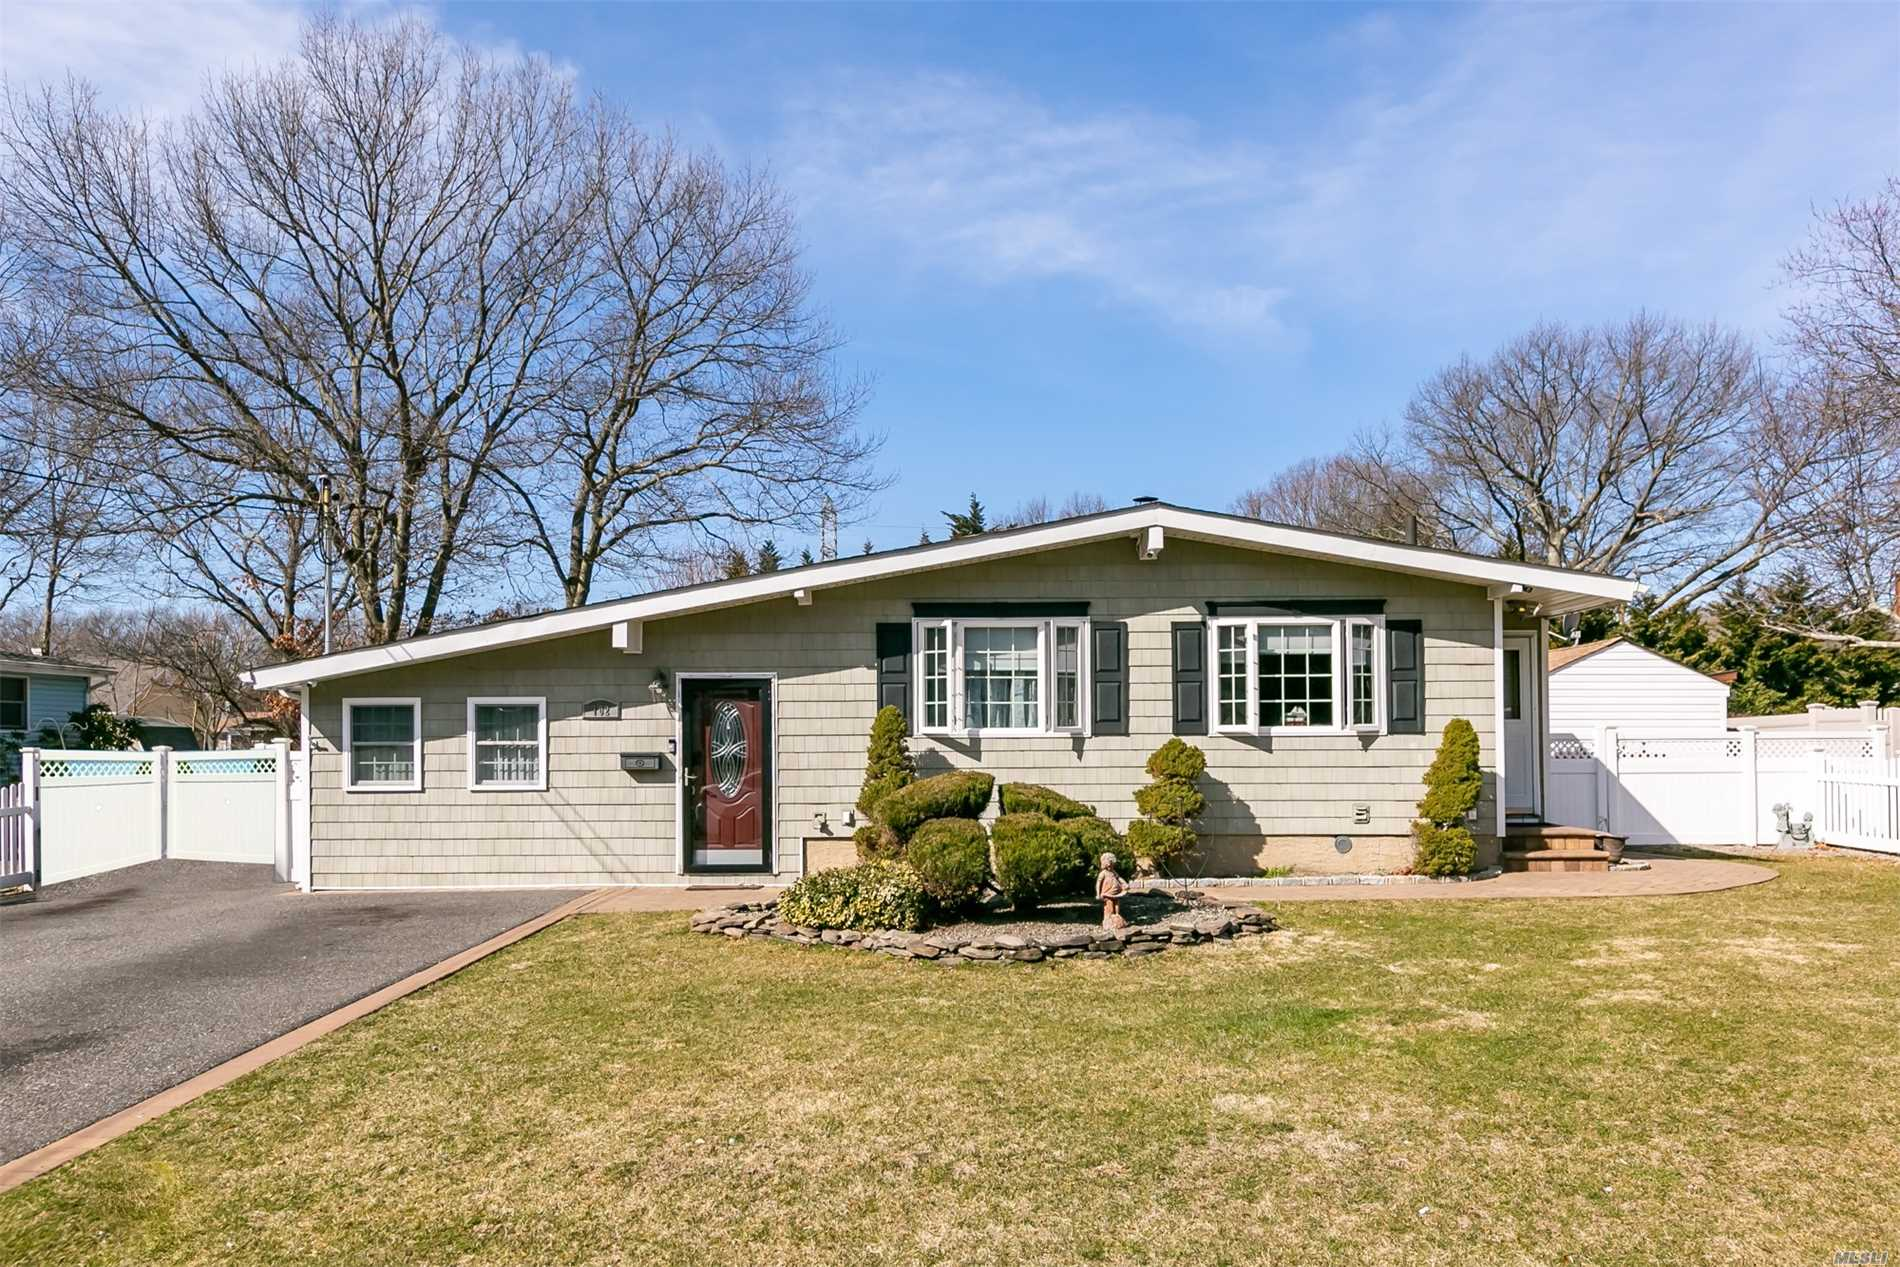 3 Bed, 2 Bath Ranch w/ Vaulted Ceilings, Hard Wood Floors, Gas Cooking, A Beautiful Private Backyard w/ New Trex Deck, Vinyl Fencing And FirePit. Updates Include Kitchen, Appliances, Siding, Windows, Roof, Electric. Too Many To List!! LOW Taxes In Sachem Schools This Will Not Last!